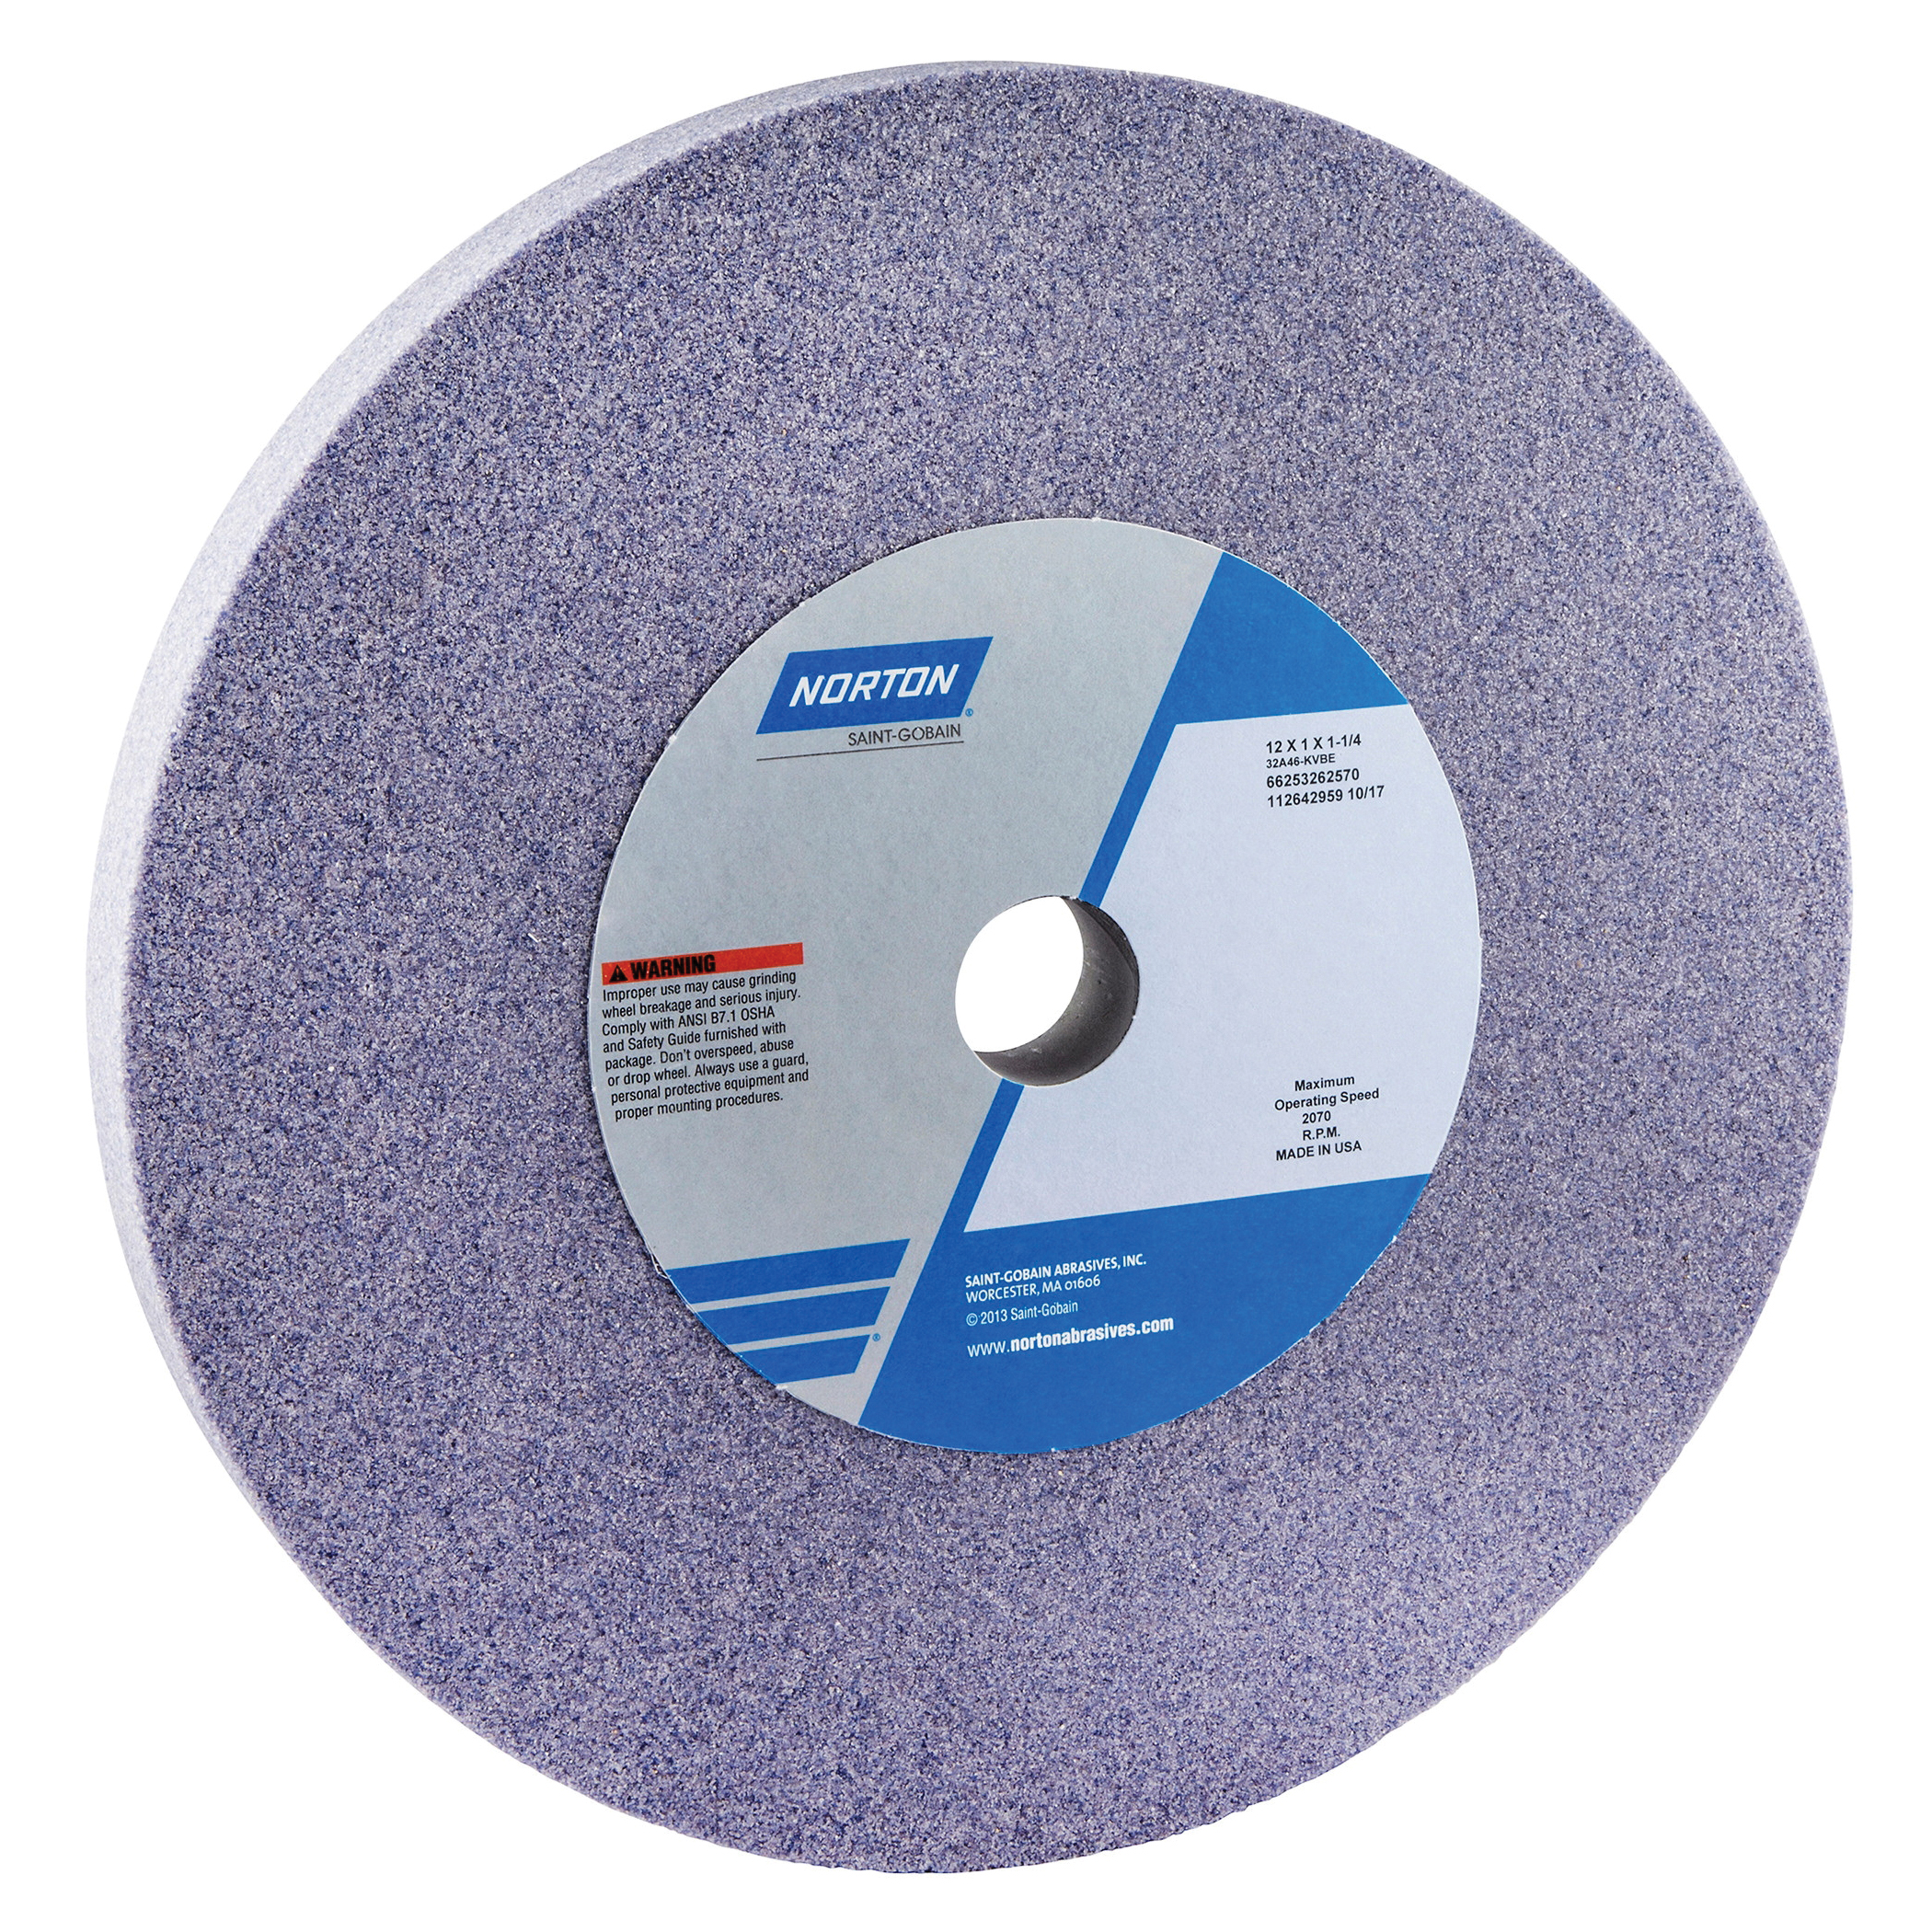 Norton® 66253262570 32A Straight Toolroom Wheel, 12 in Dia x 1 in THK, 1-1/4 in Center Hole, 46 Grit, Aluminum Oxide Abrasive